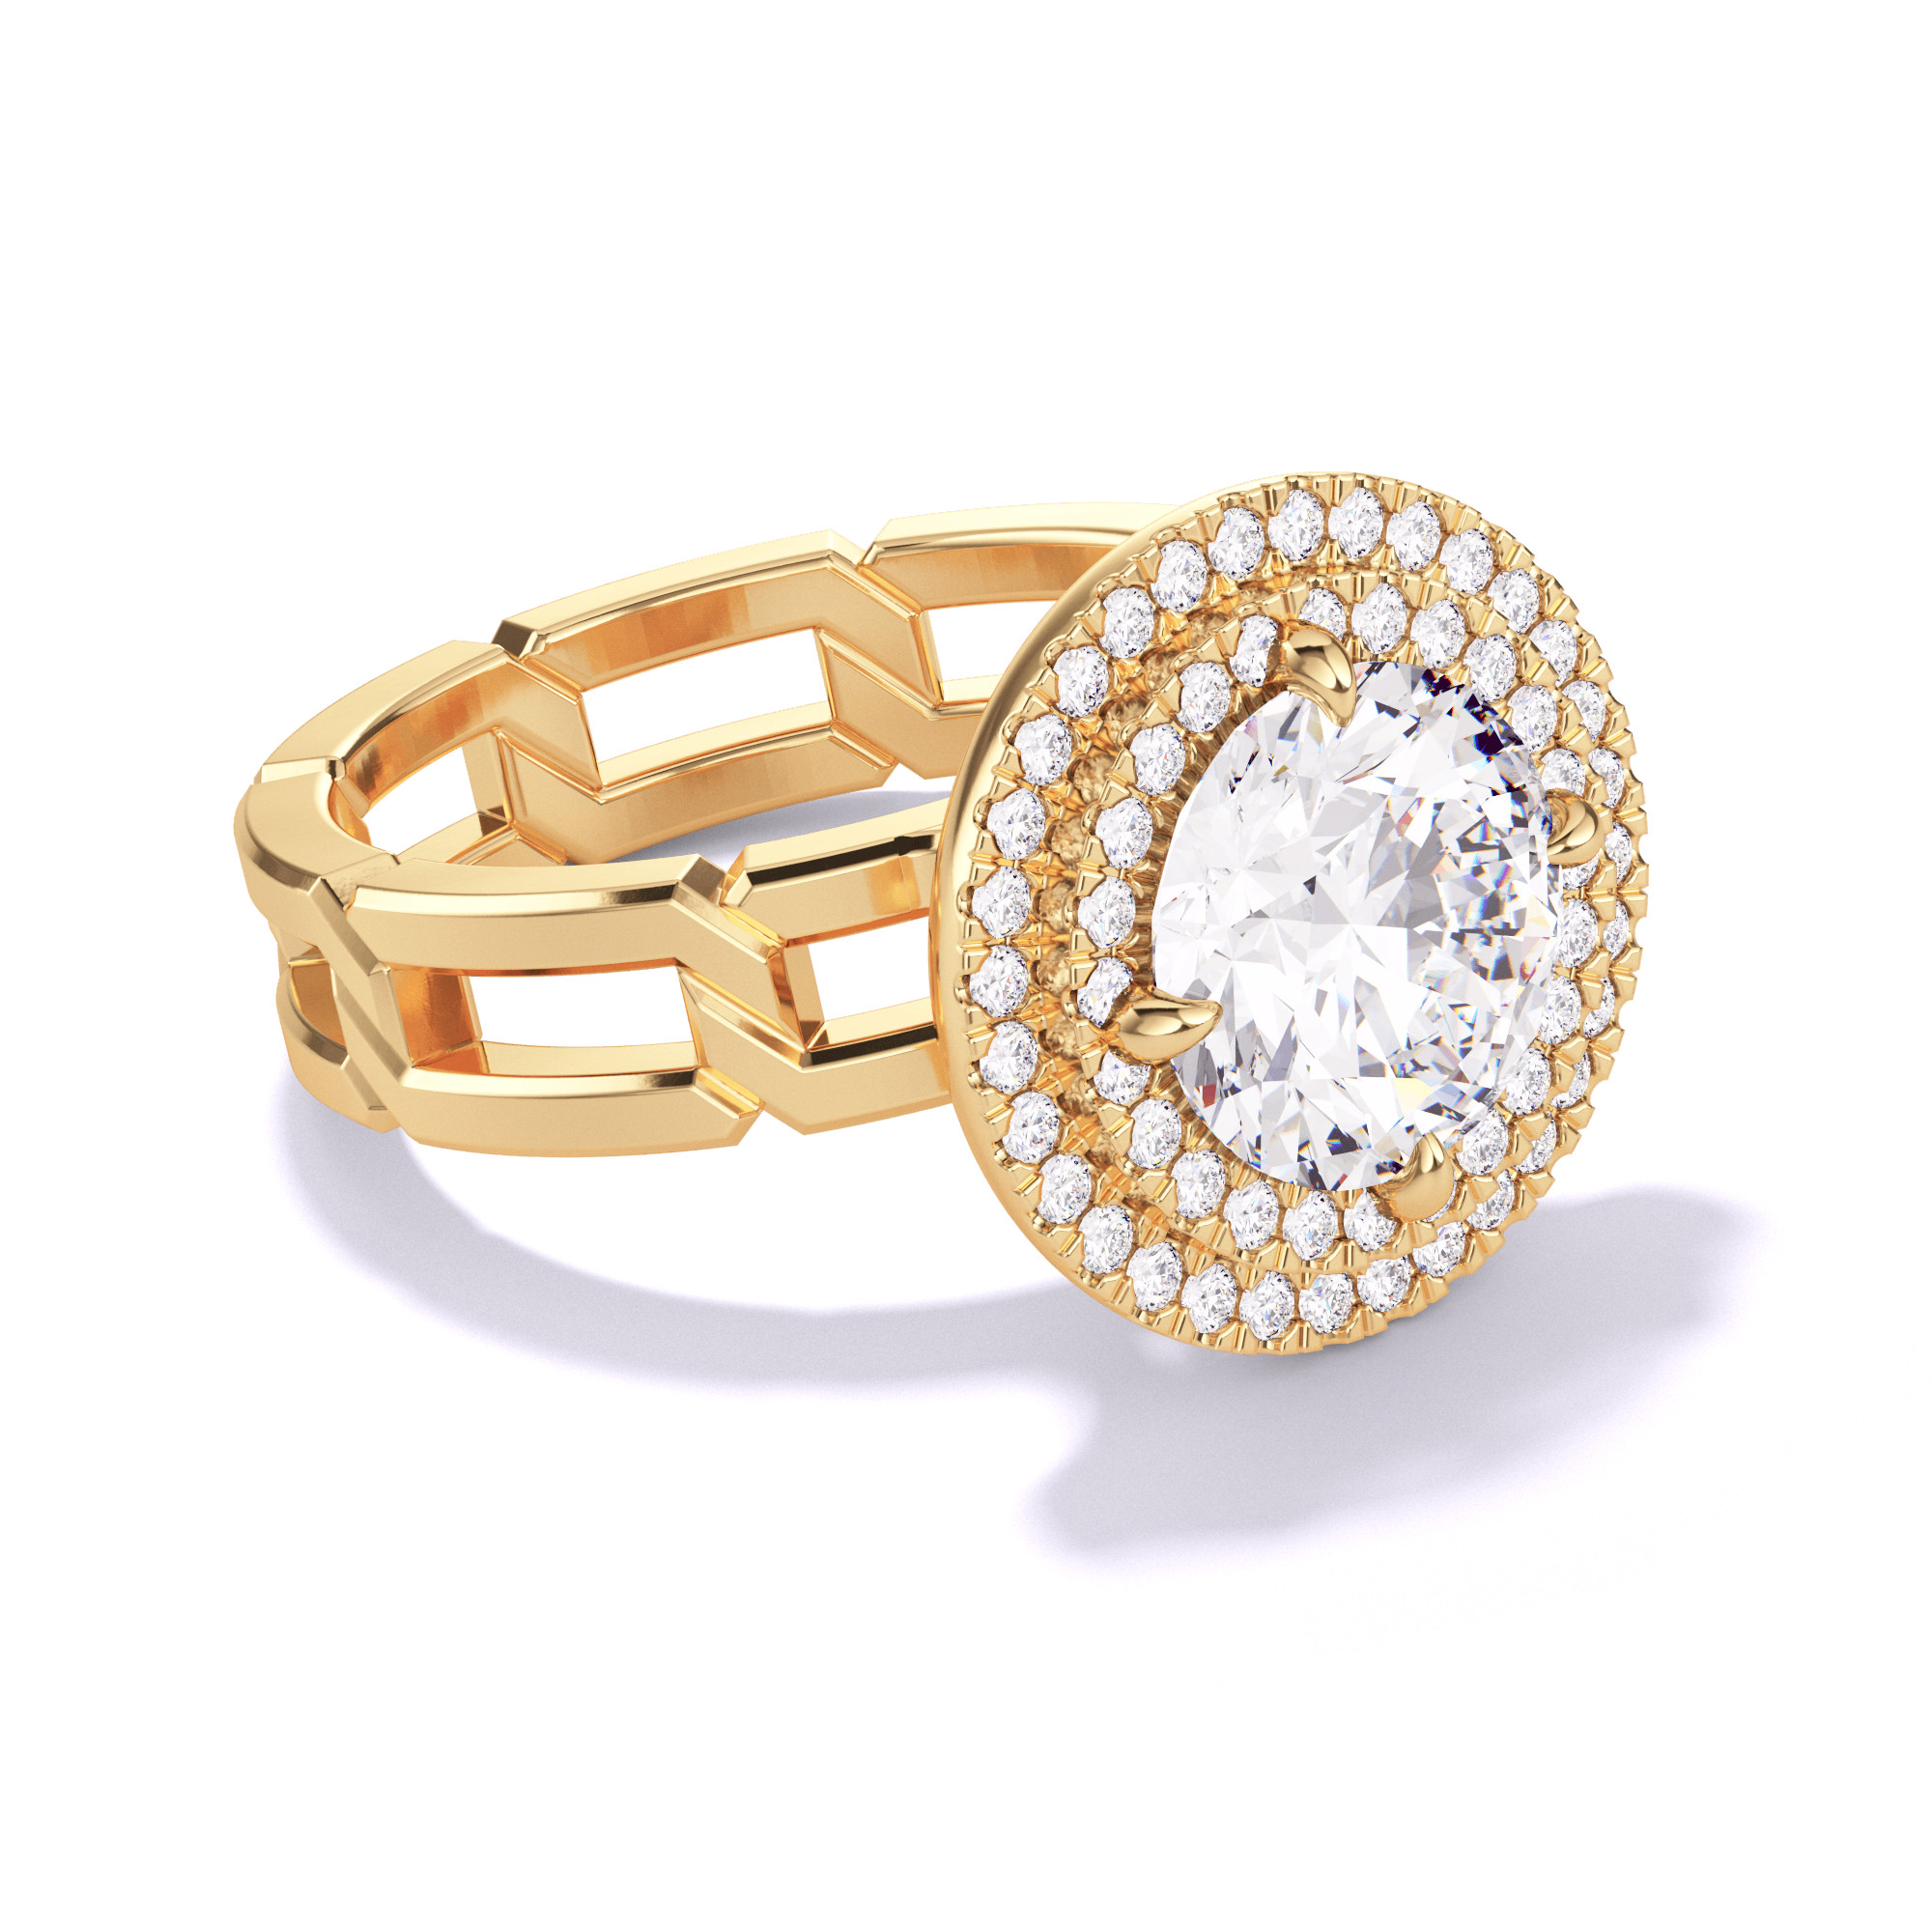 ROUND CUT, DOUBLE HALO SETTING, 8 LINKS, 18K YELLOW GOLD